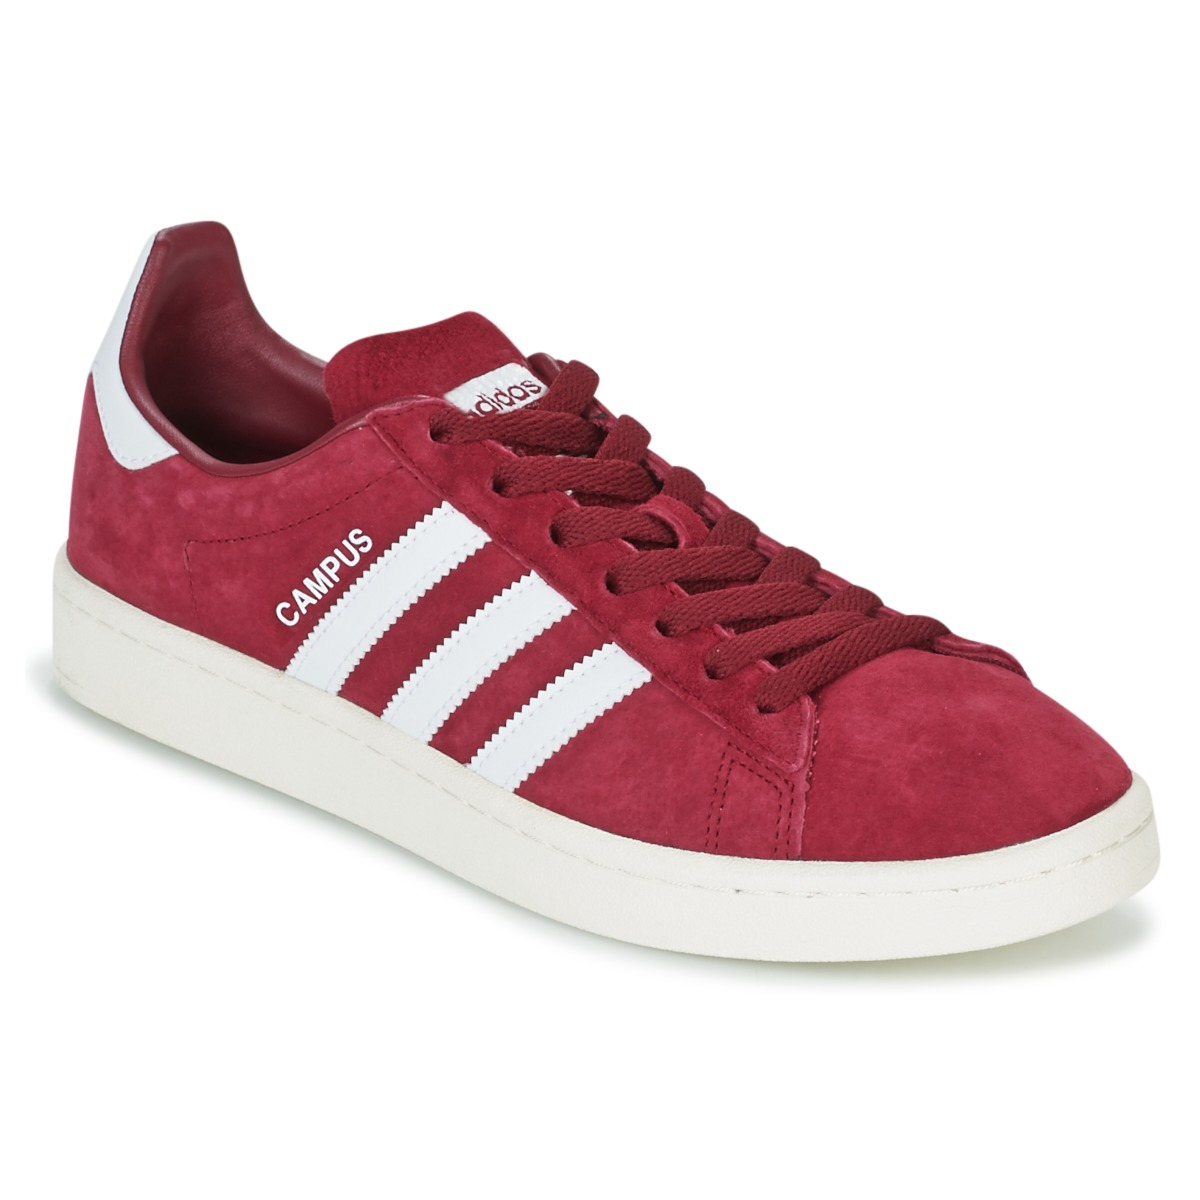 adidas campus uomo bordeaux